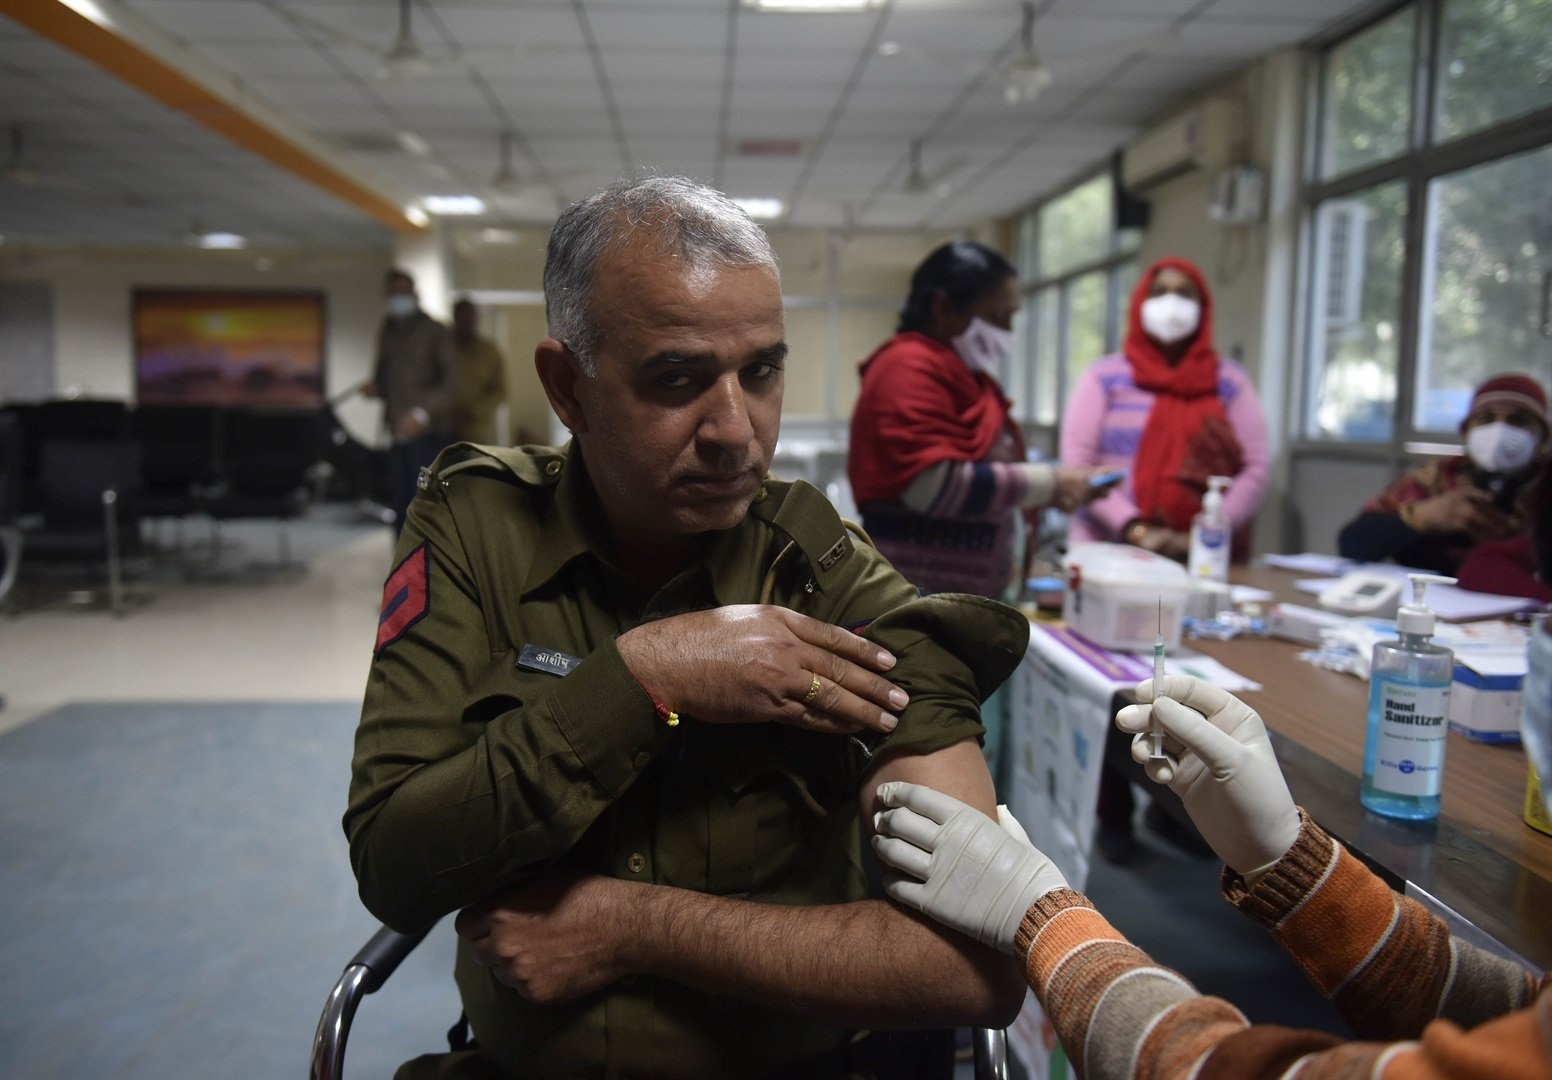 A health worker administers the AstraZeneca vaccine to a member of the Gurugram Police in Gurugram, India on February 5, 2021.